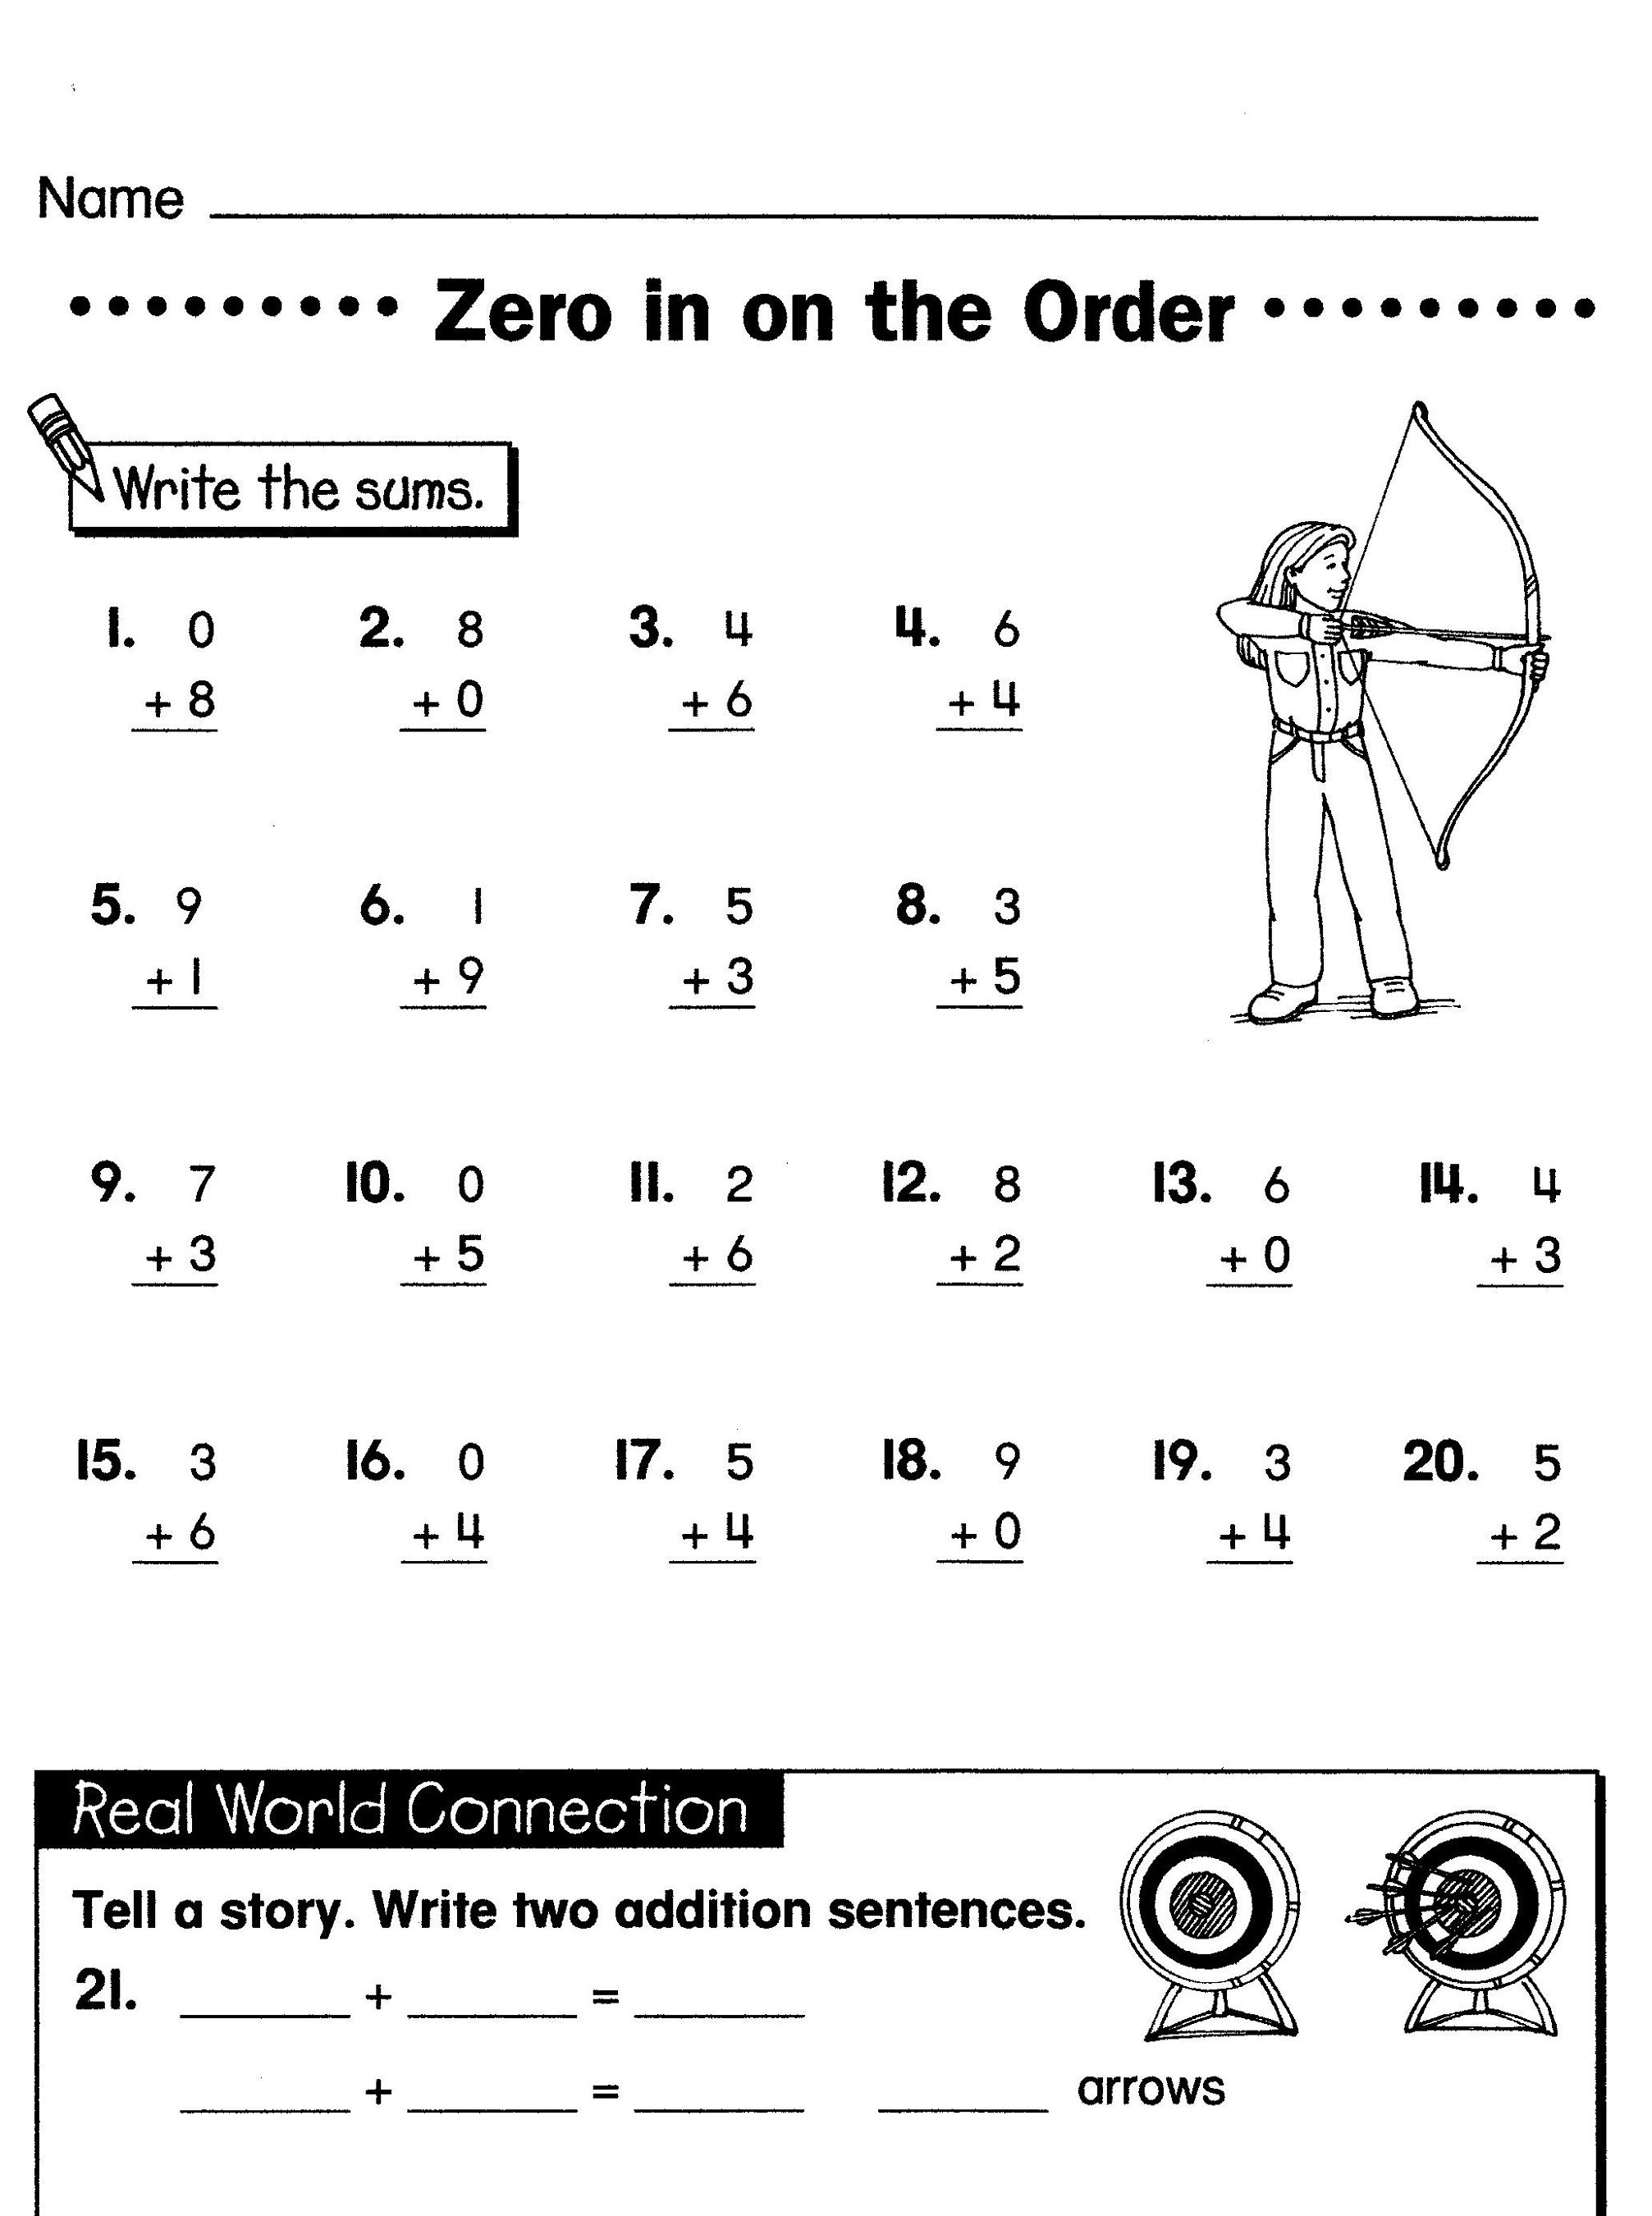 Worksheets 5th Grade Free Math Worksheets grade 1 worksheet yahoo image search results summer school math sheets for to help your first elementary learning mathematics effectively include the english a